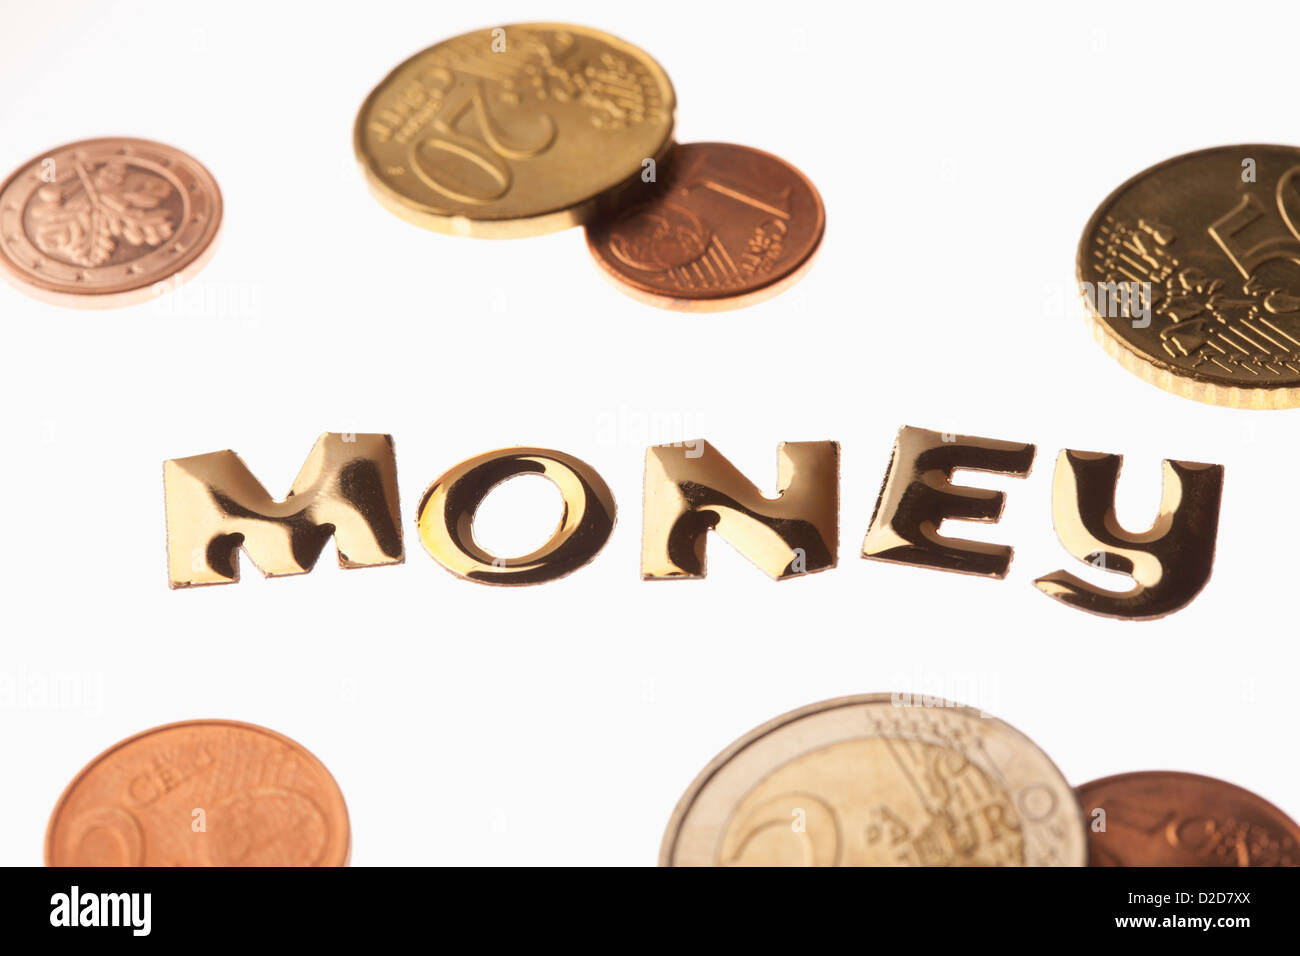 The word 'money' in gold lettering surrounded by euro coins - Stock Image